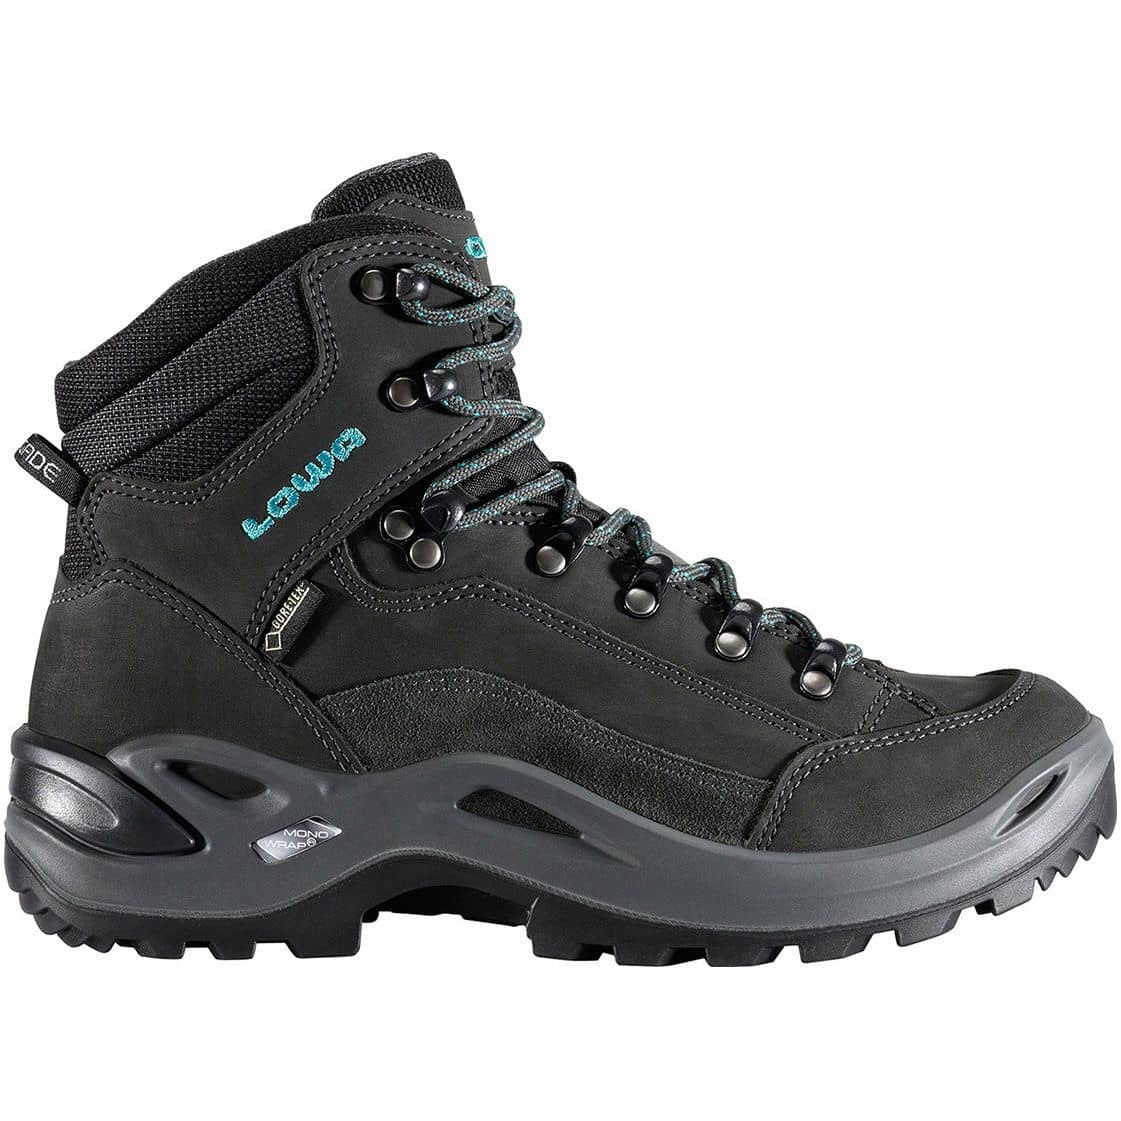 Lowa Renegade GTX Mid Lady anthrazit/türkis - UK 6,5